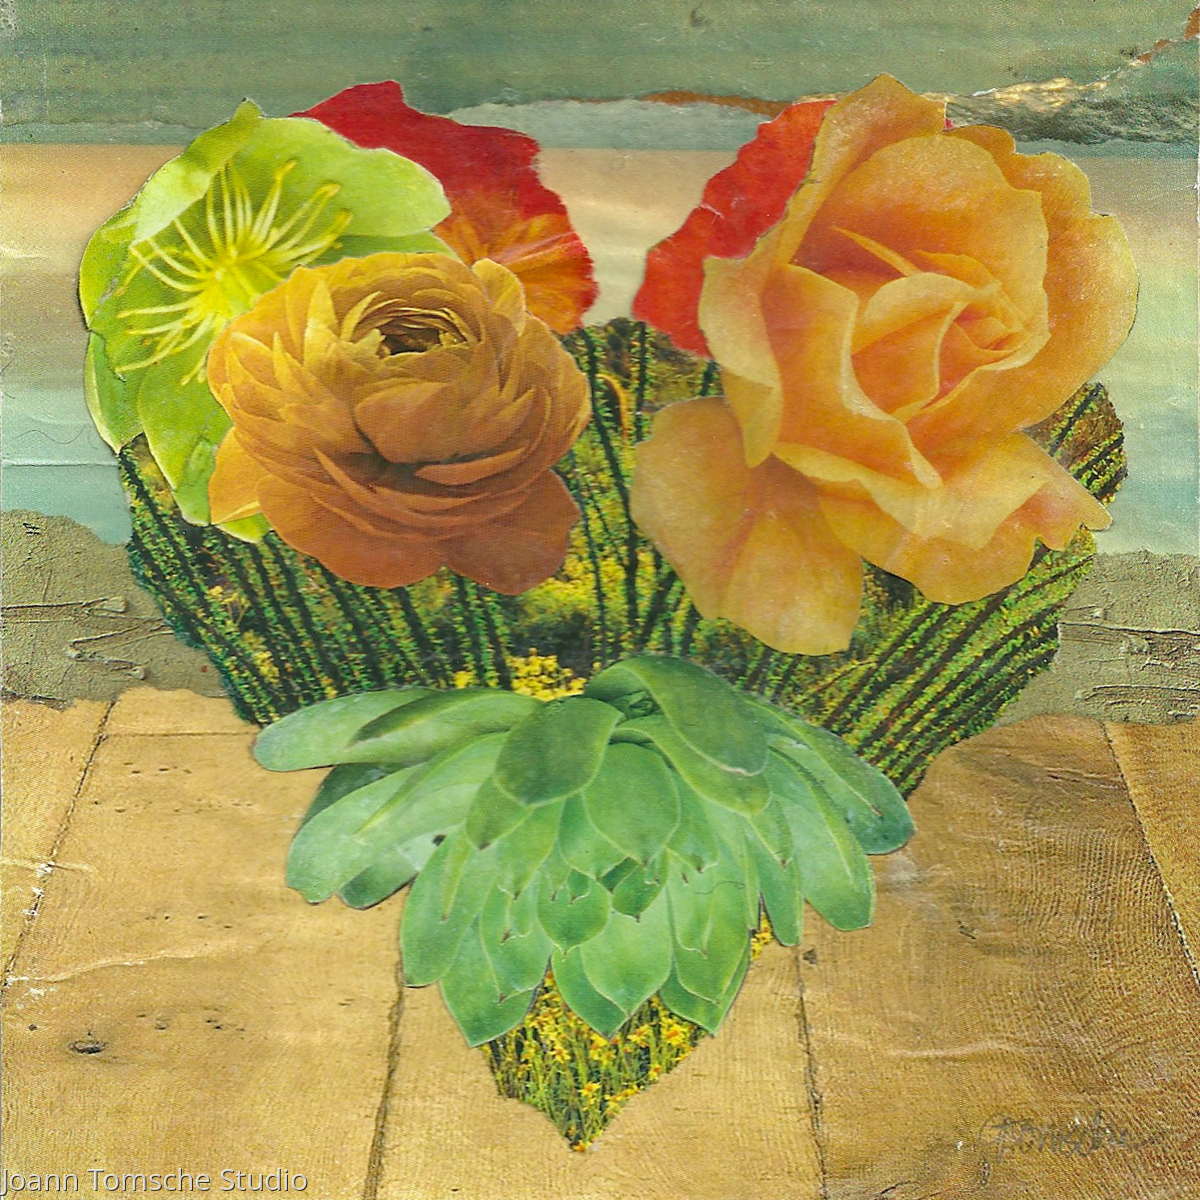 Cactus Rose Heart collage (large view)